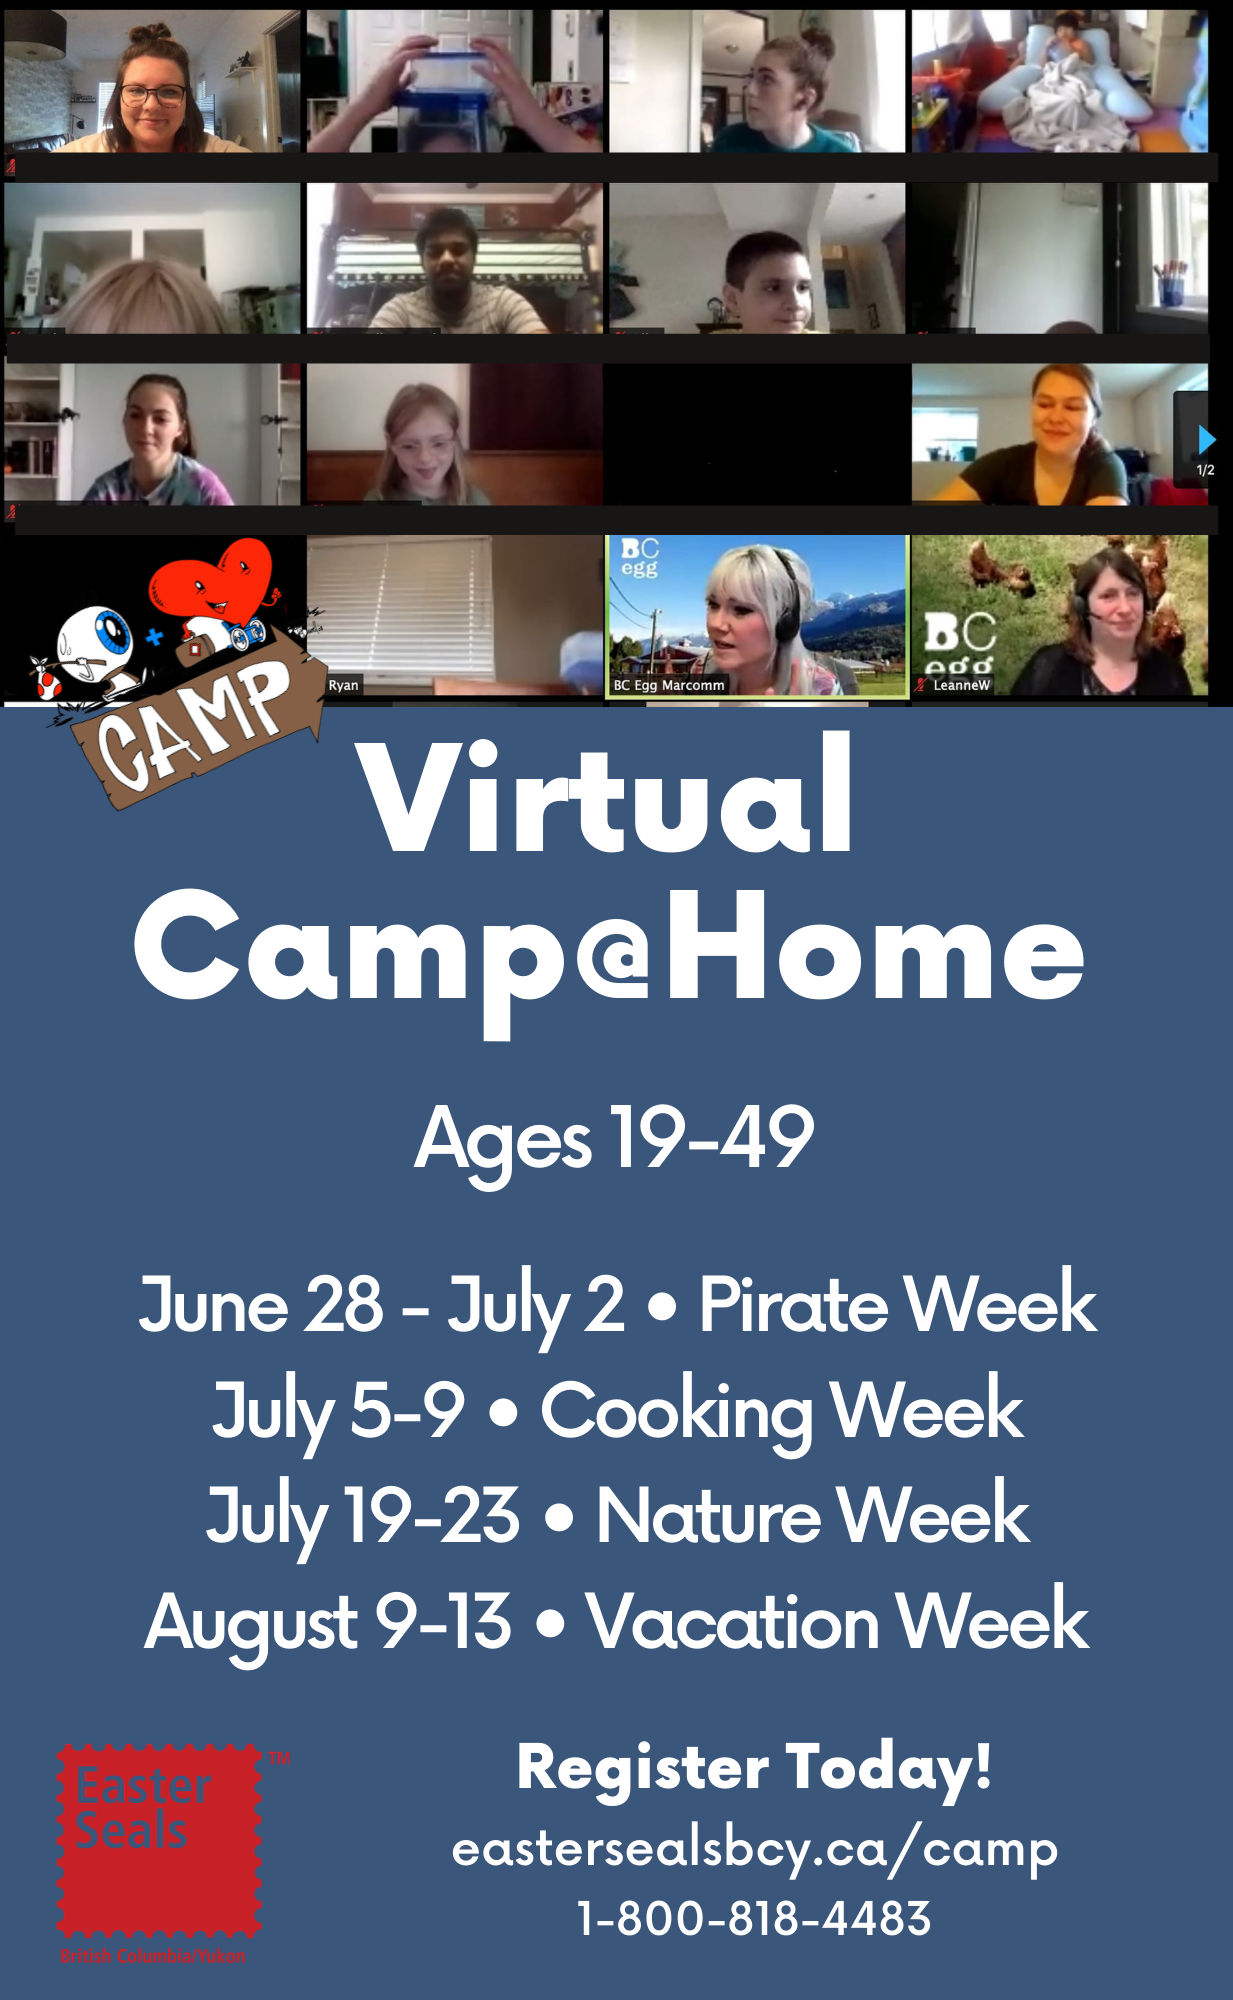 Virtual Summer Camp@Home For Adults (Ages 19-49)